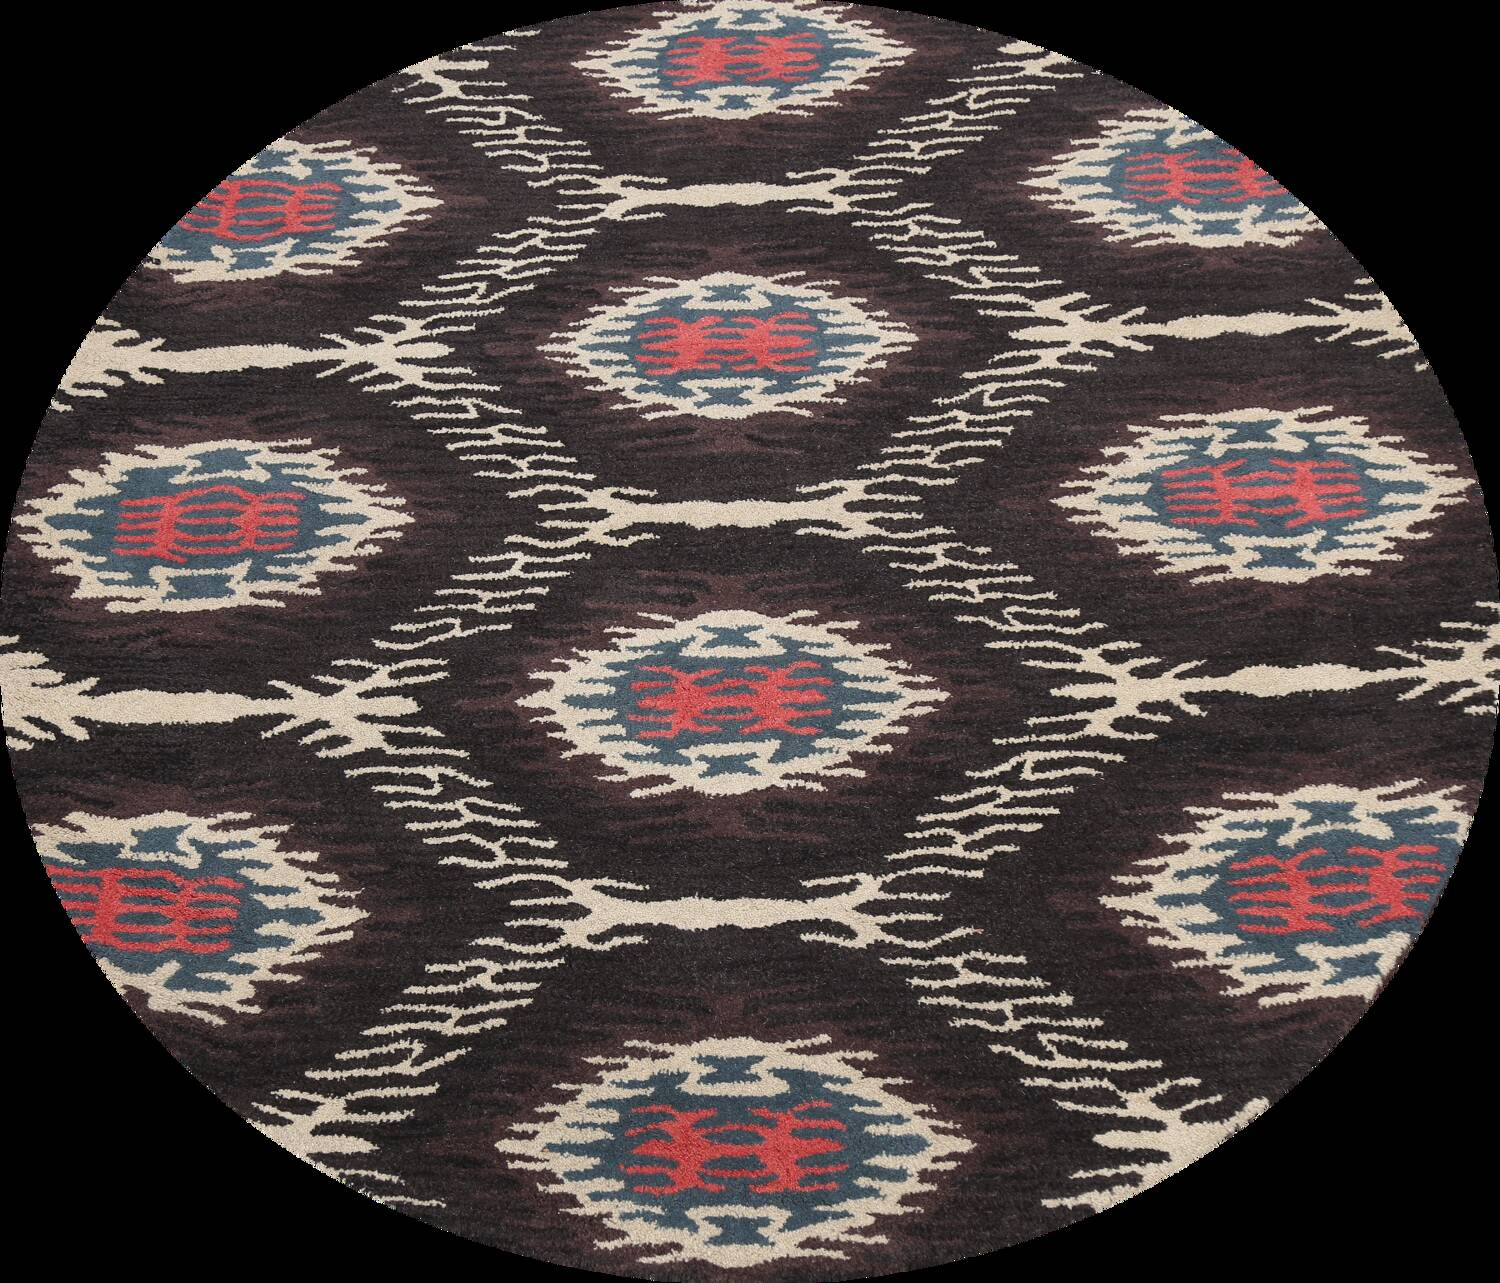 Abstract Round Rug 6x6 image 1